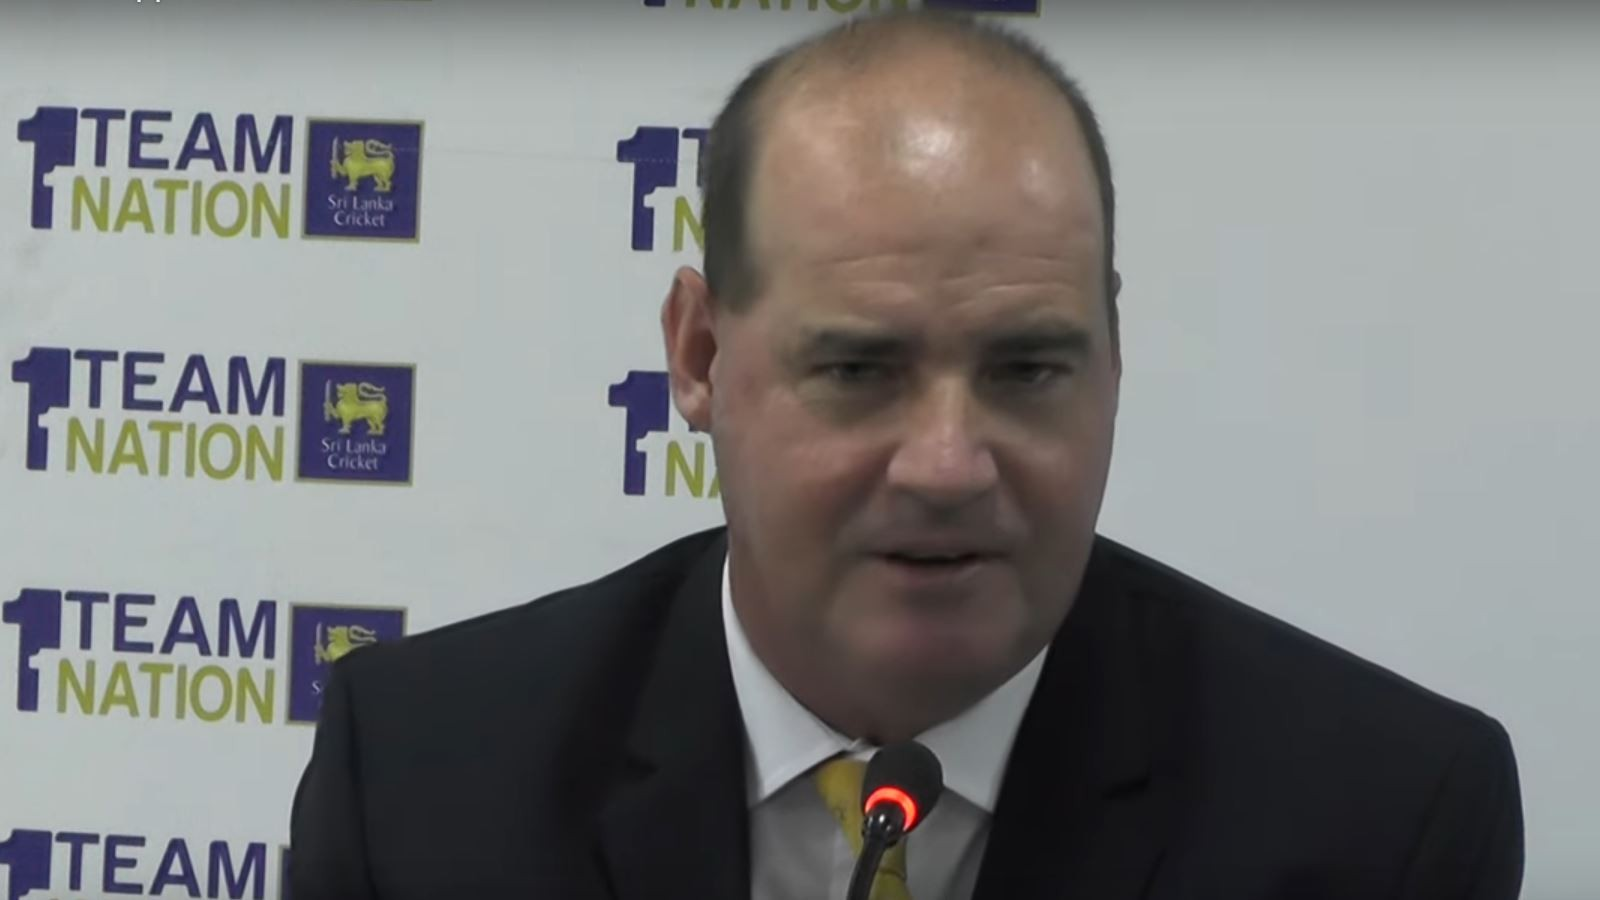 Sri Lanka cricket announces Mickey Arthur as their consultant head coach